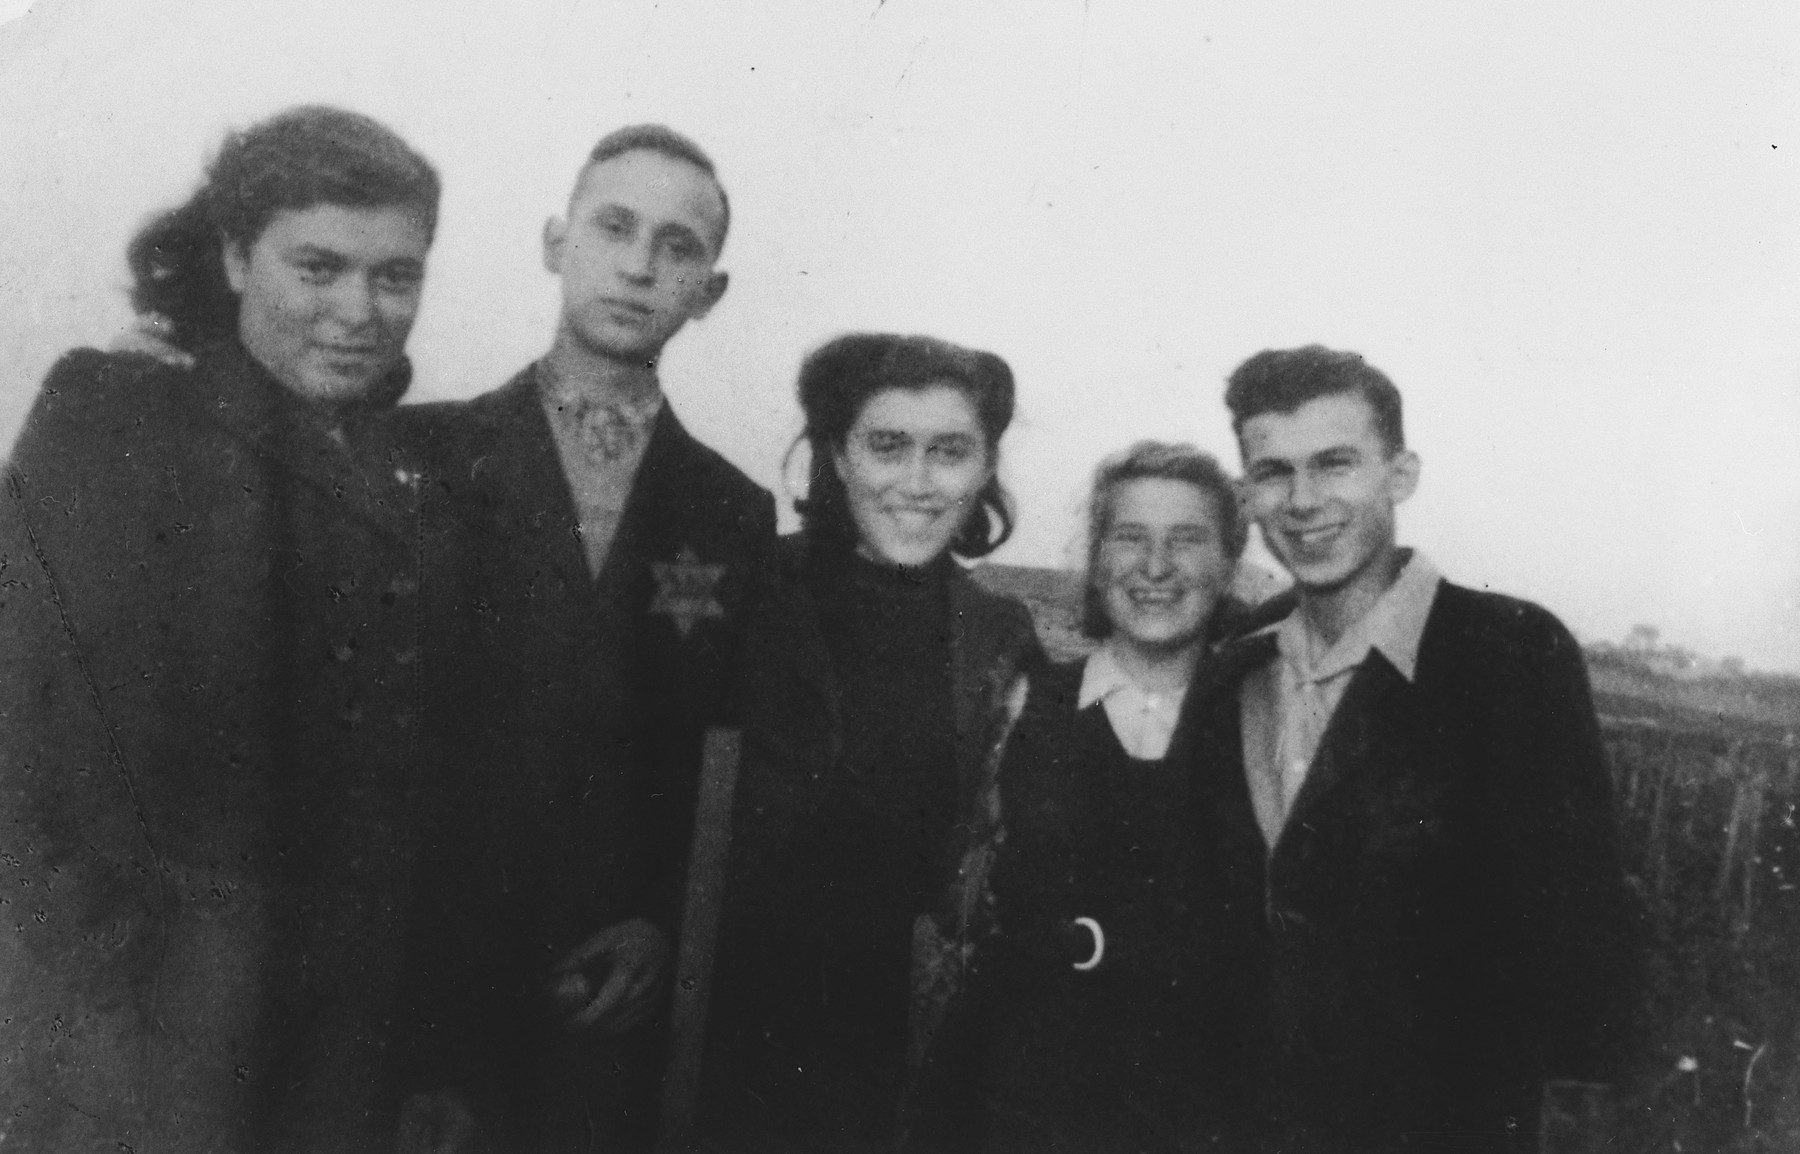 Group portrait of five young people in the Dabrowa ghetto wearing Jewish stars.  Those pictured include Moniek Gorset, Mania Kornfeld, Zosia Spokojna and Este Zelten.